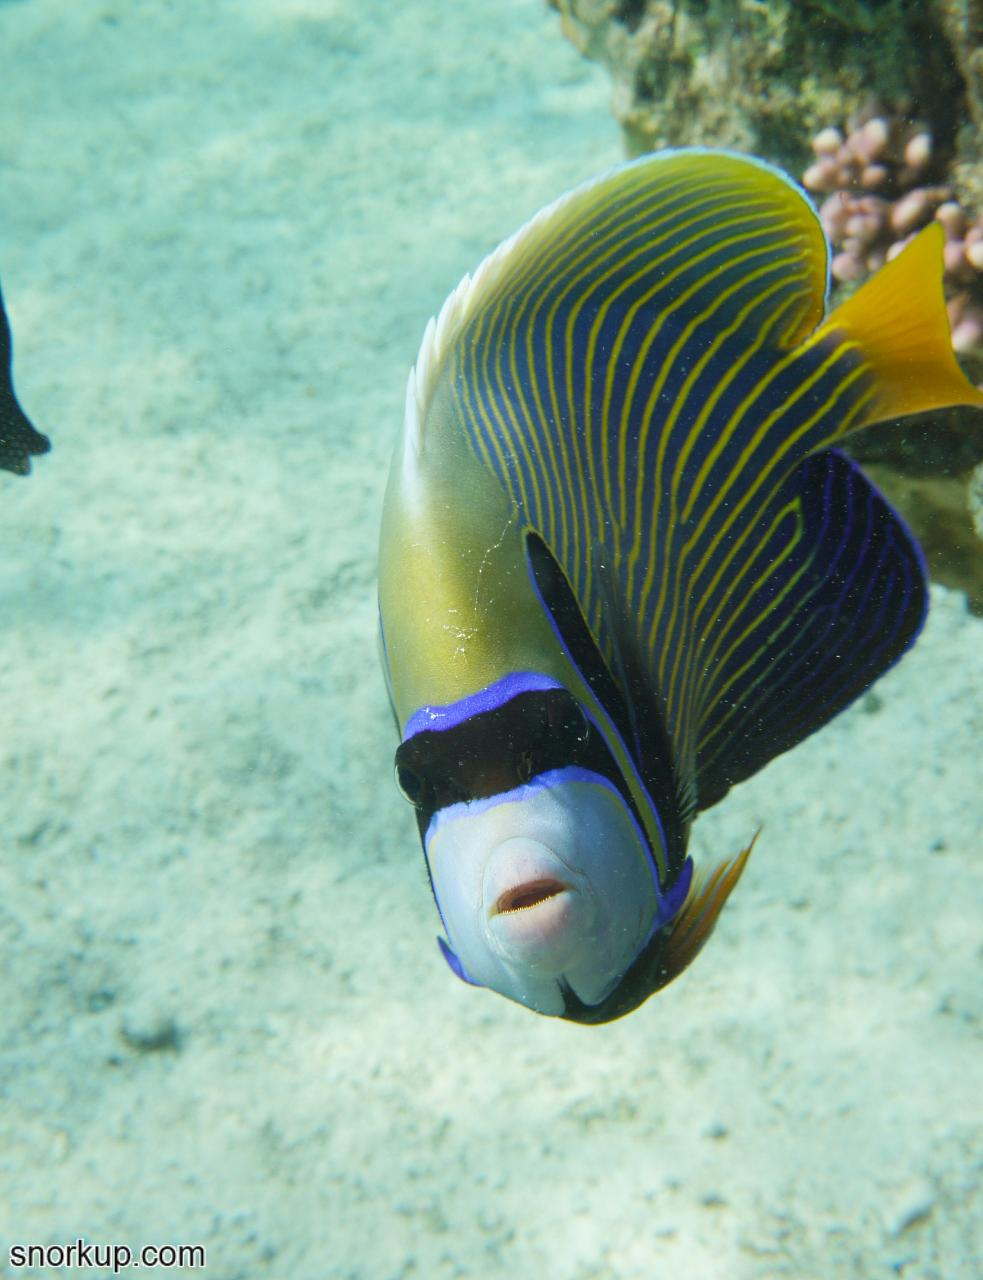 Императорский ангел (лат.Pomacanthus imperator, анг.Emperor angelfish)